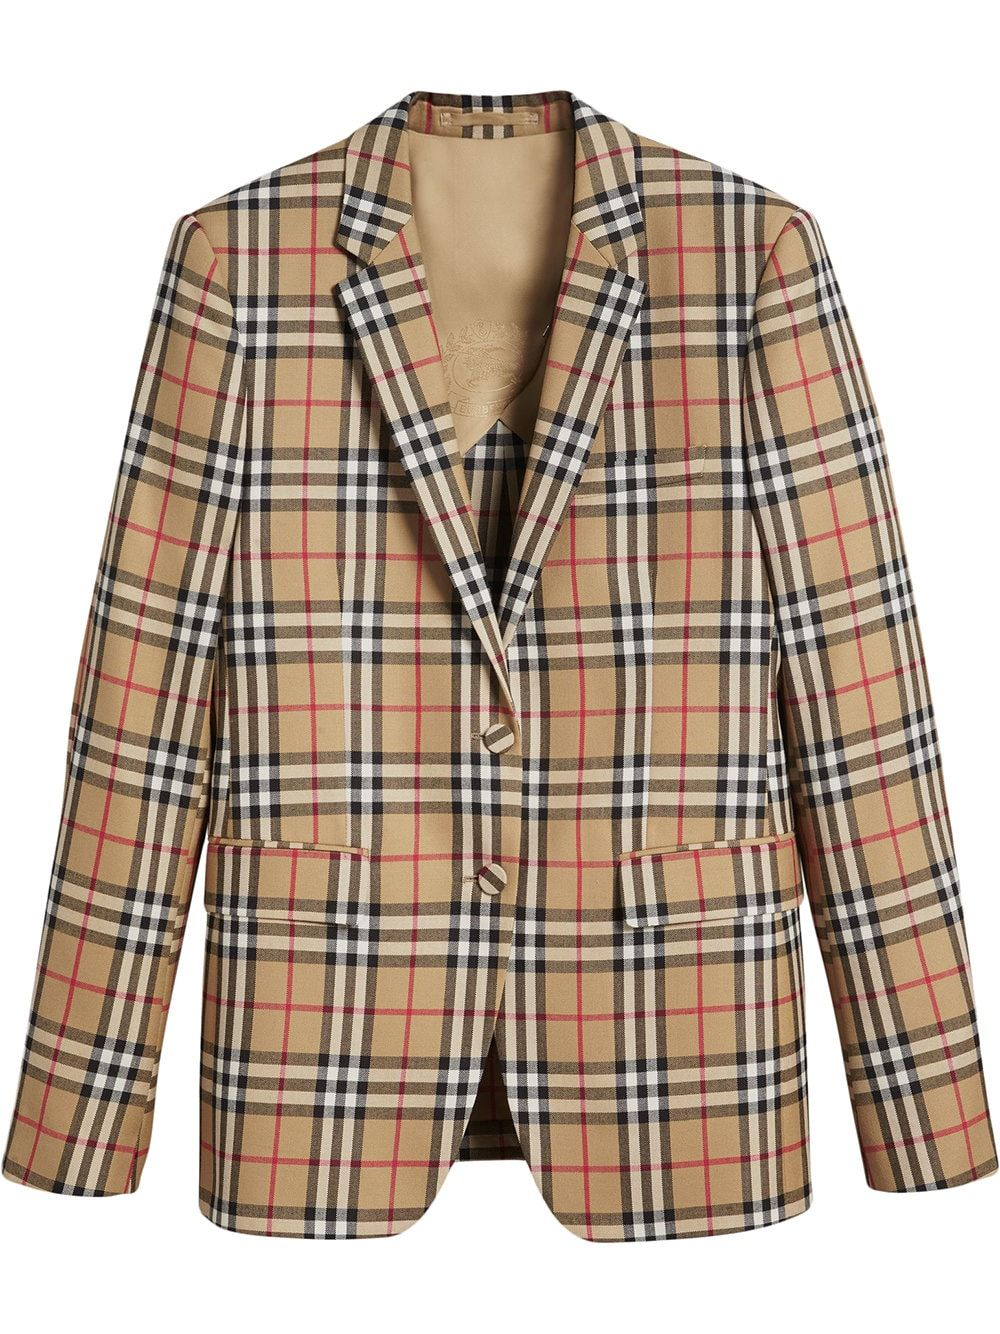 Tailored Vintage Jacket Vintage Burberry Burberry Tailored Check Check wYUqIAx